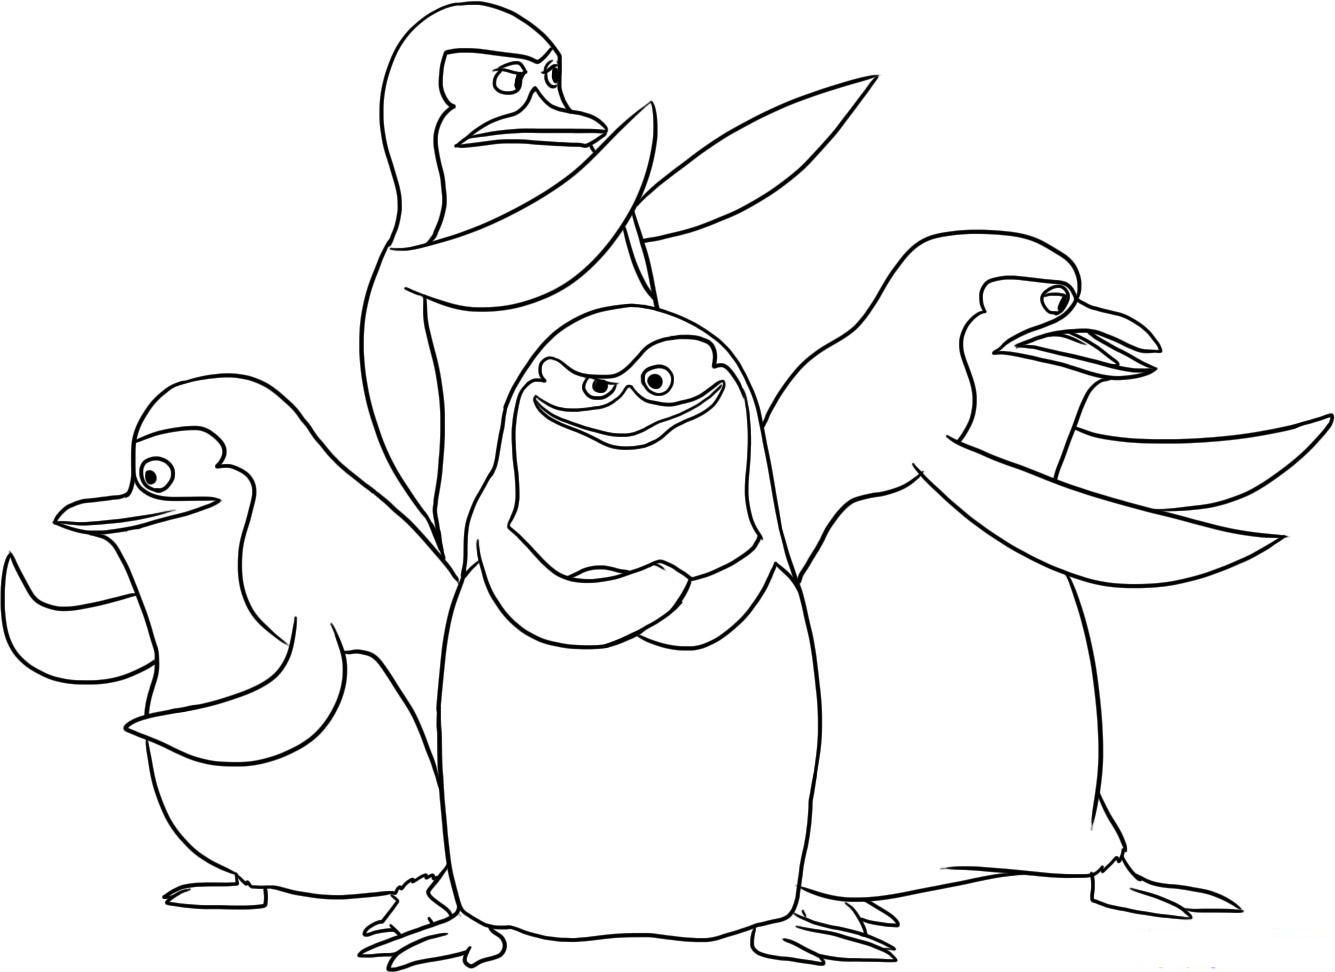 Baby animals coloring pages best coloring pictures pictures to pin on - Find This Pin And More On Madagascar Coloring Pages By Wandakelly0580